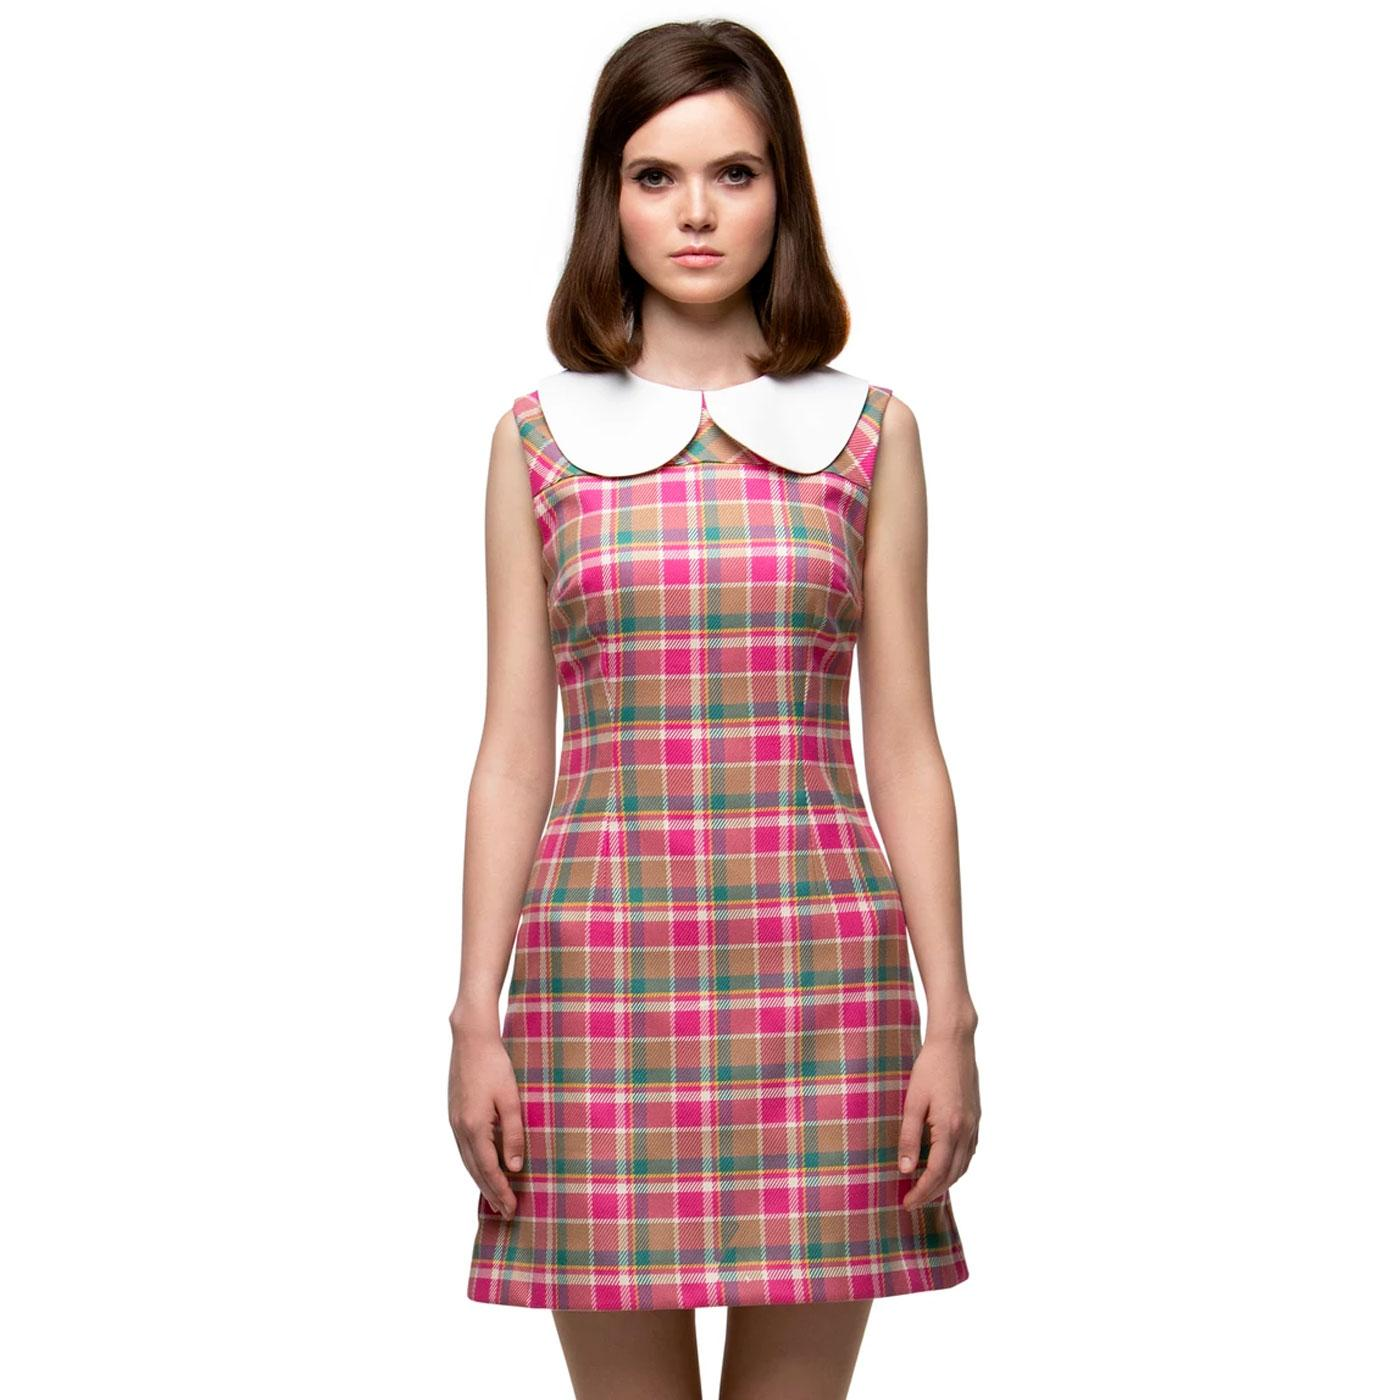 MARMALADE Mod Oversized Collar Plaid Check Dress